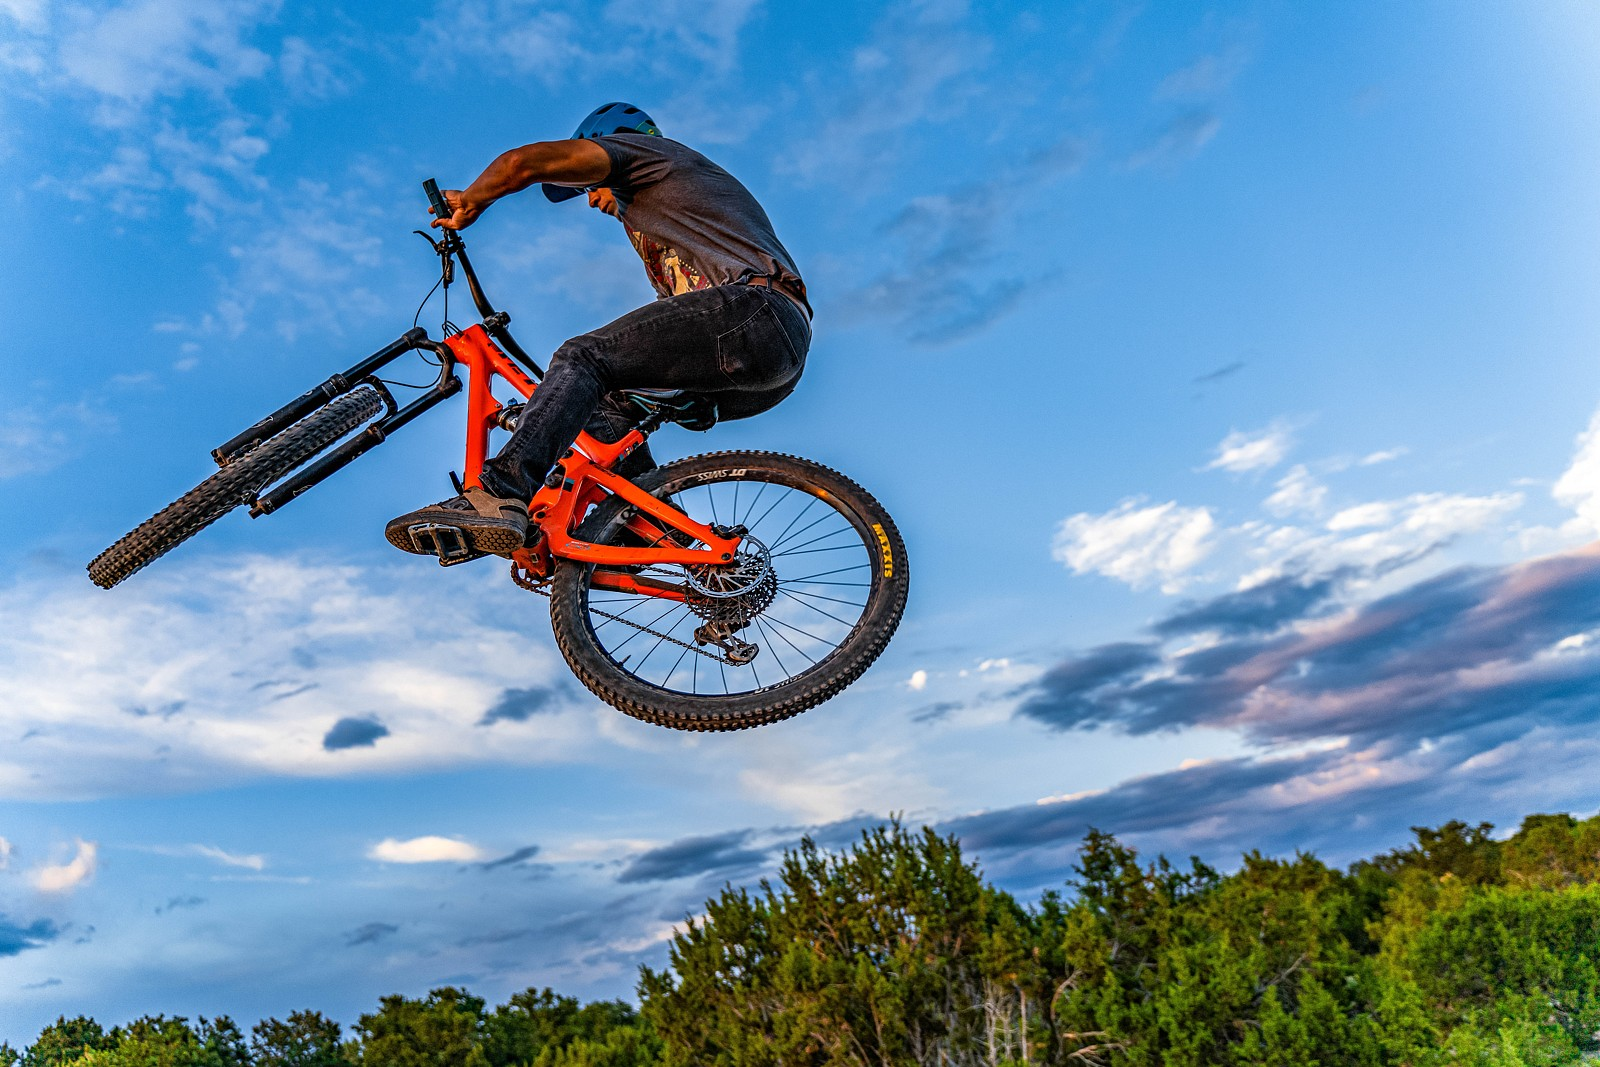 James practicing whips - legpwr - Mountain Biking Pictures - Vital MTB